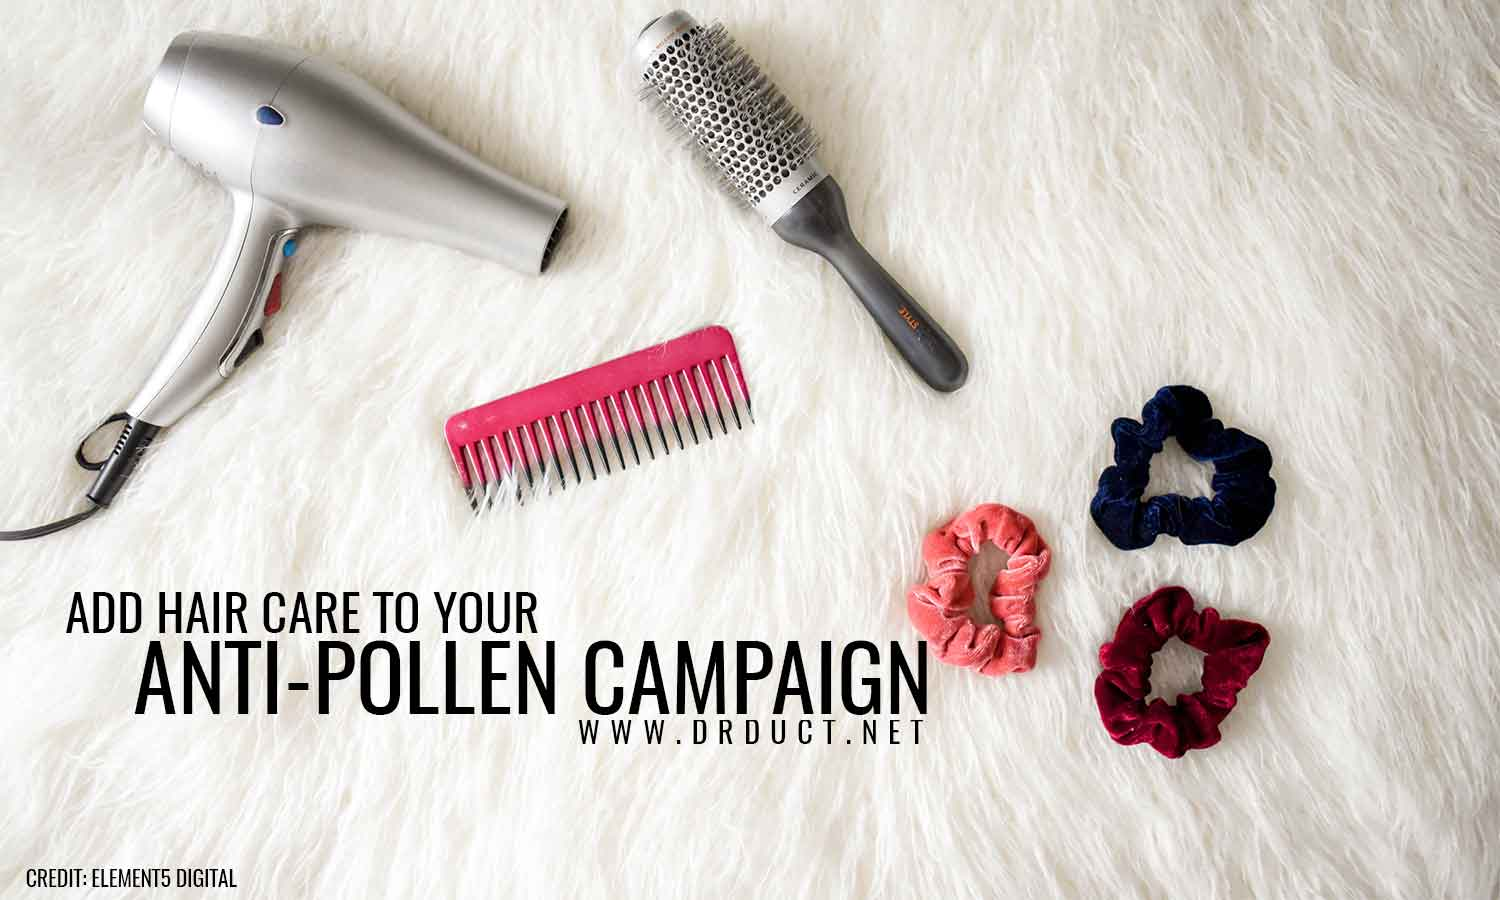 Add hair care to your anti-pollen campaign